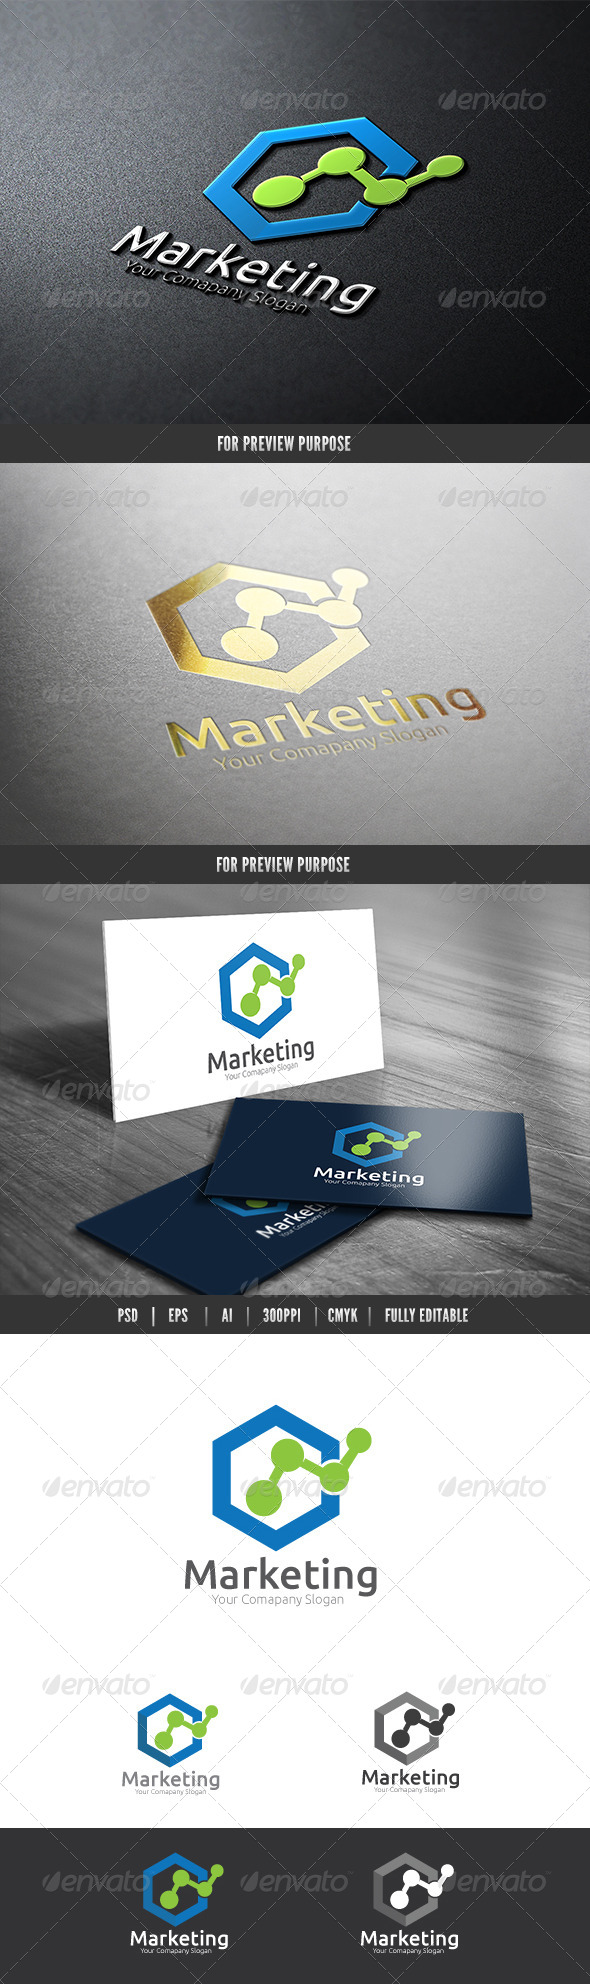 Marketing - Vector Abstract